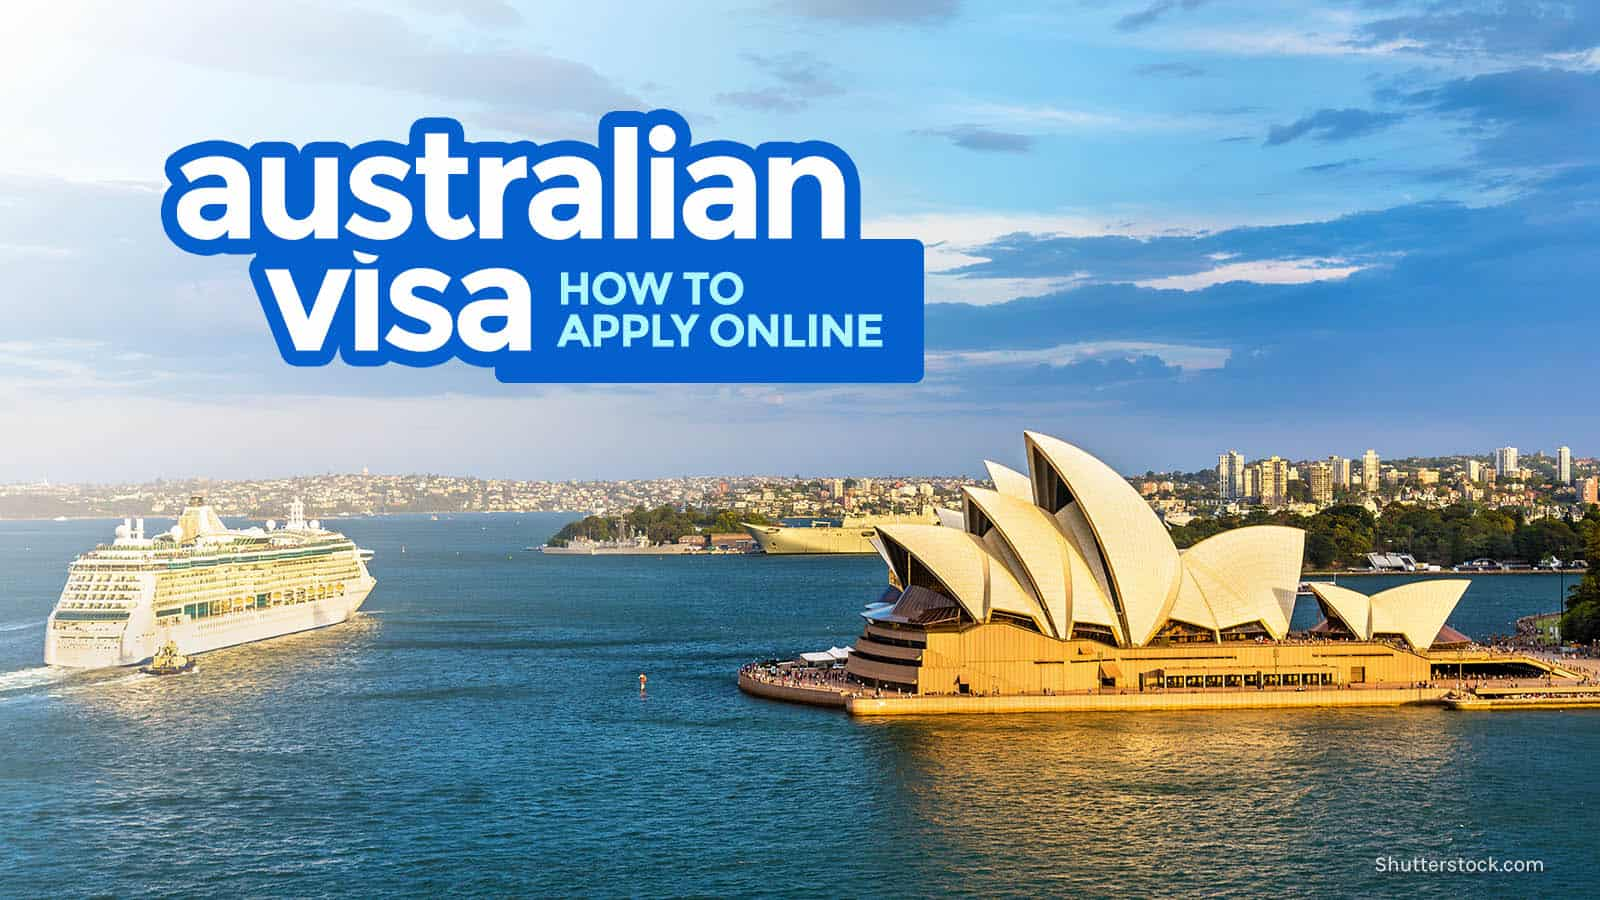 AUSTRALIAN VISA: REQUIREMENTS & ONLINE APPLICATION 2019